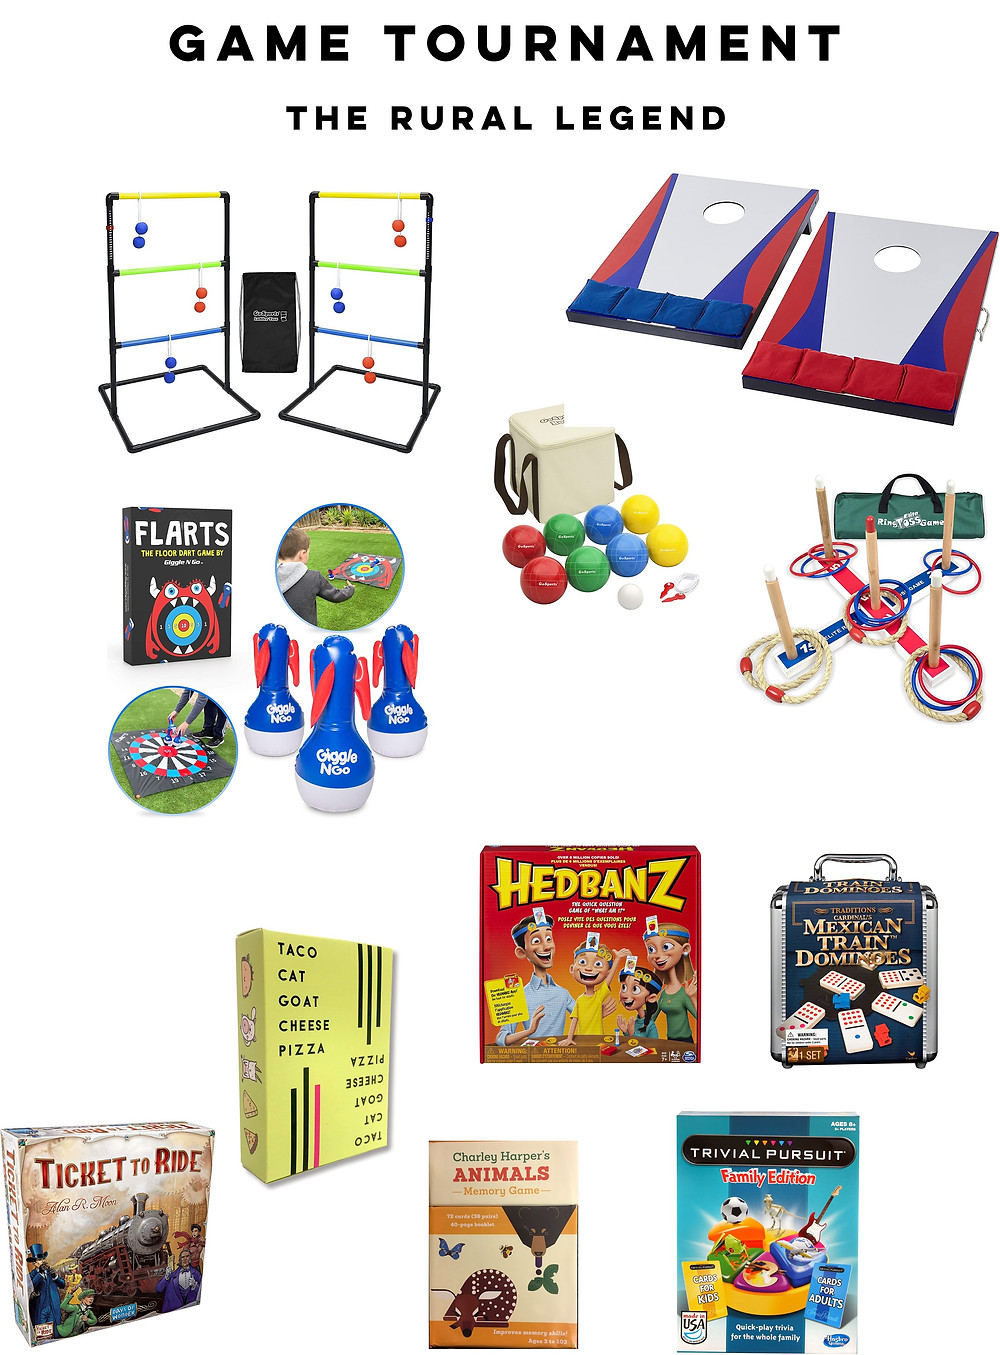 Father's day ideas, father's day activities, father's day gifts, gifts for men, gifts for dads, summer family activities, summer family ideas, best ideas for father's day, the rural legend, family blog, family activities, family ideas, tubing, grill ideas, outdoor movie night, family art, game tournament, family game night, family Olympics, family games, family water sports, family movie night, backyard movie, gifts for dad, ideas for dad, father's day guide, father's day gift guide